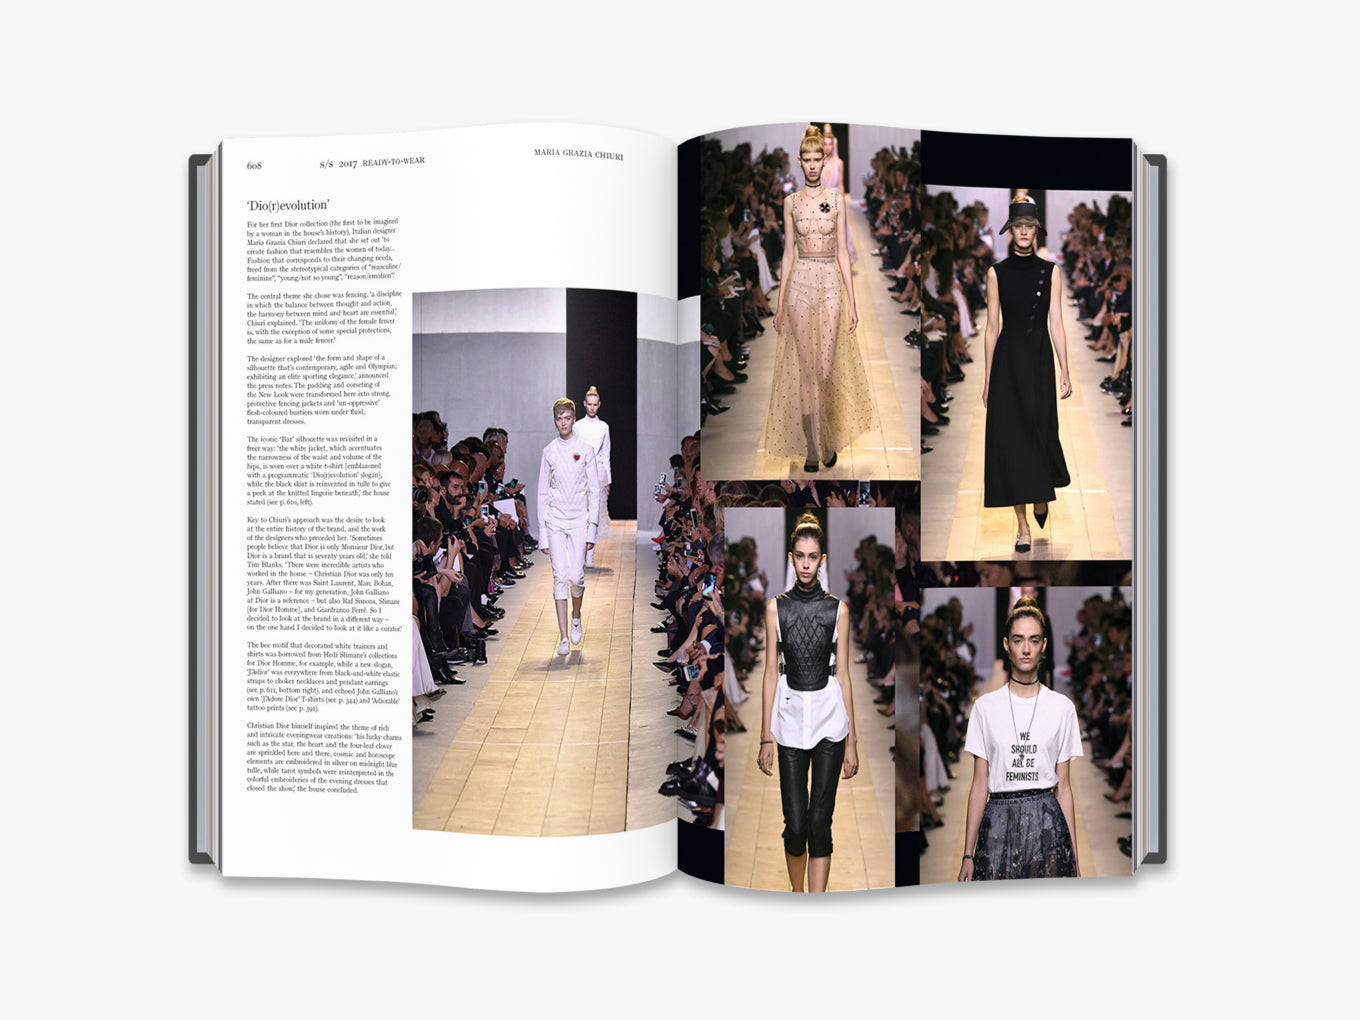 Dior Catwalk fra NEW MAGS